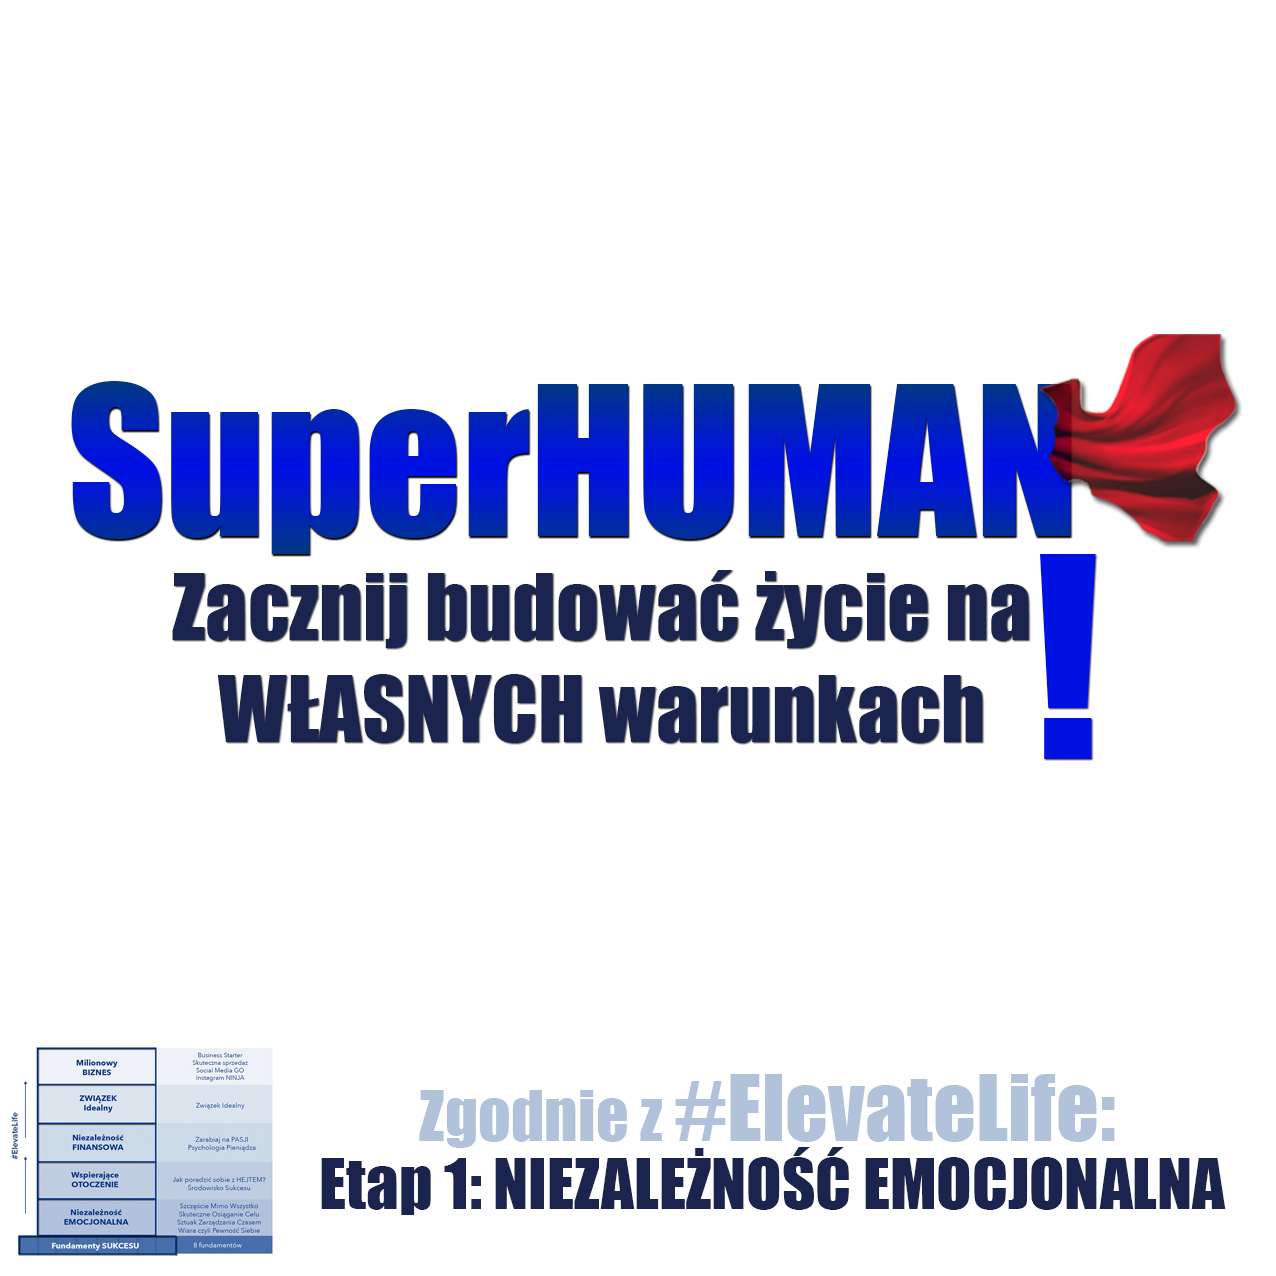 SuperHUMAN logo eventy